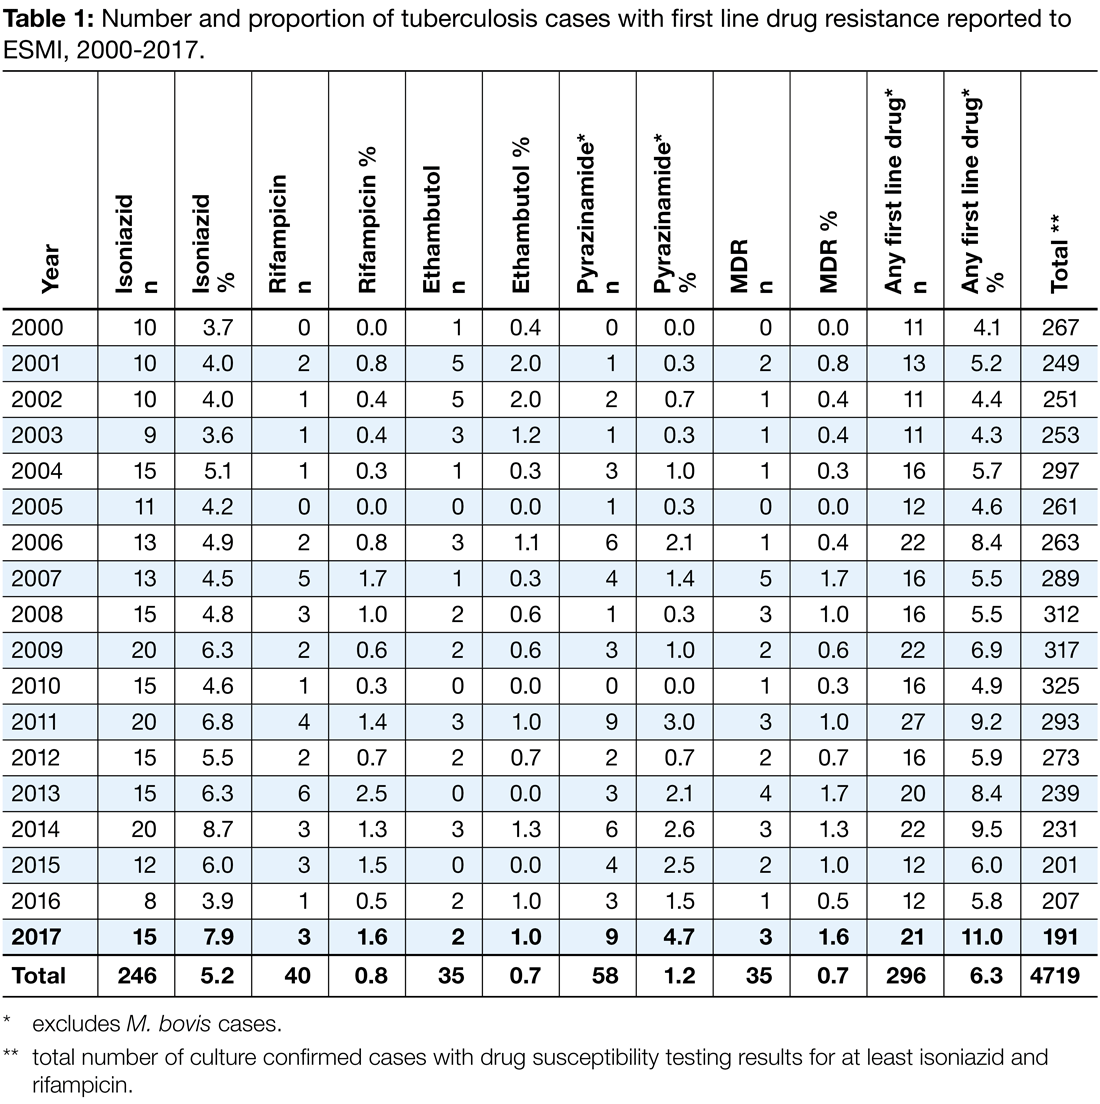 Table 1, showing the number and proportion of tuberculosis cases with first line drug resistance reported to ESMI, 2000 to 2017.